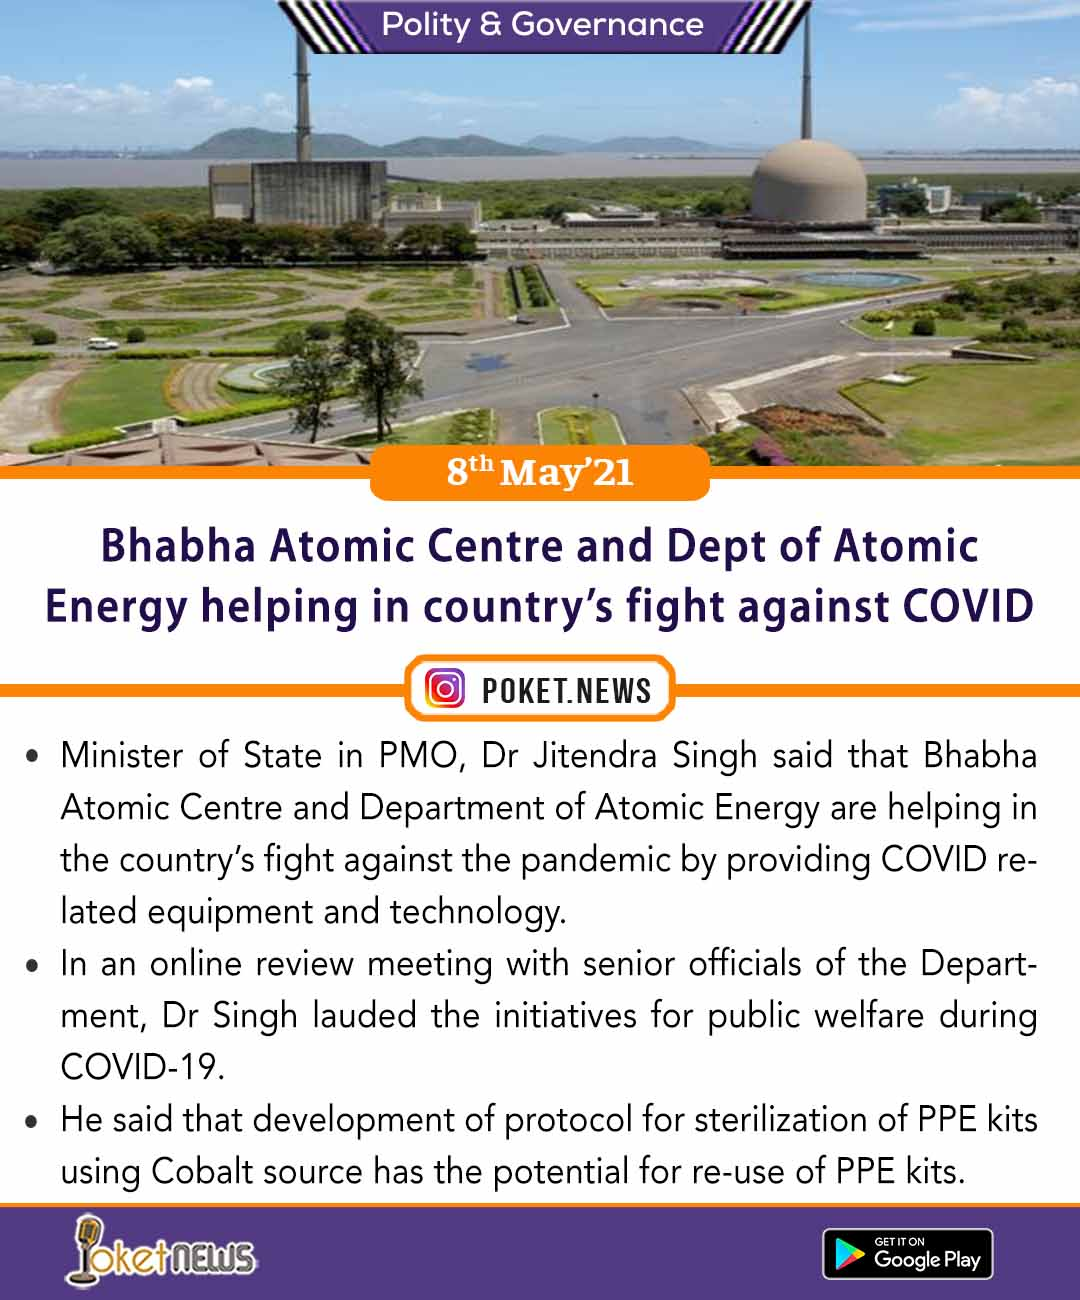 Bhabha Atomic Centre and Dept of Atomic Energy helping in country's fight against COVID